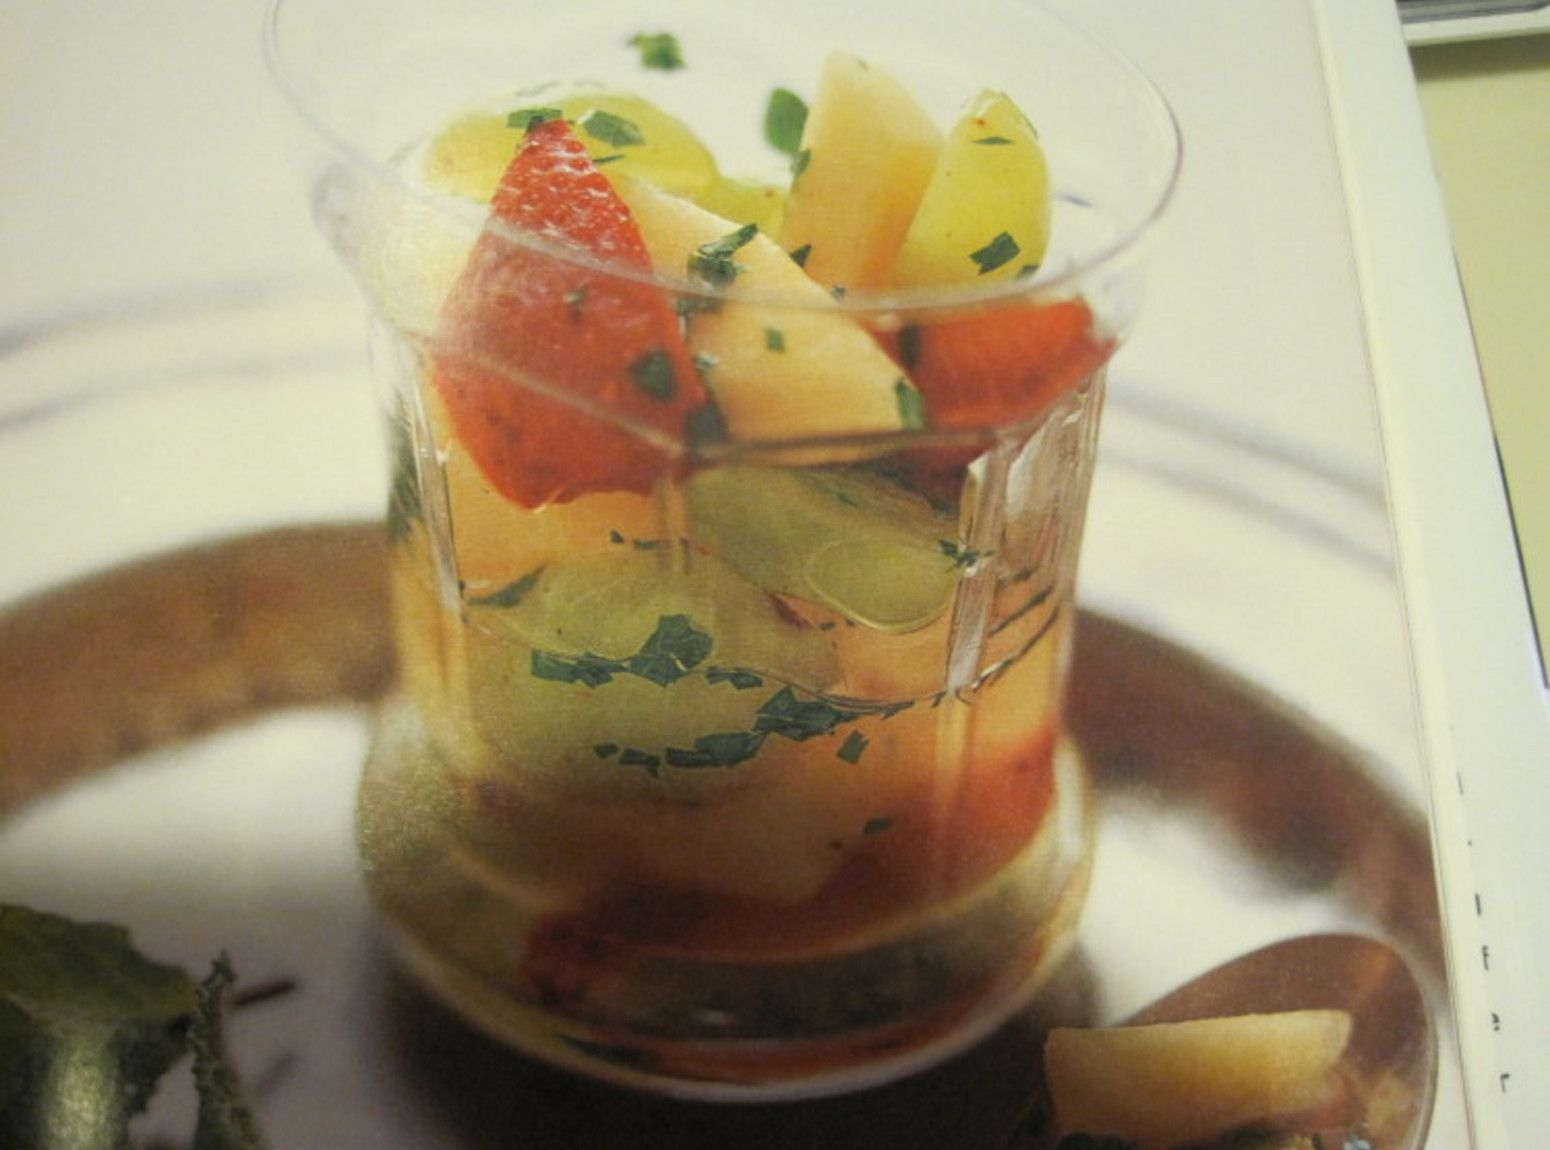 Cantaloupestrawberries and grapes wwhite wine and mint